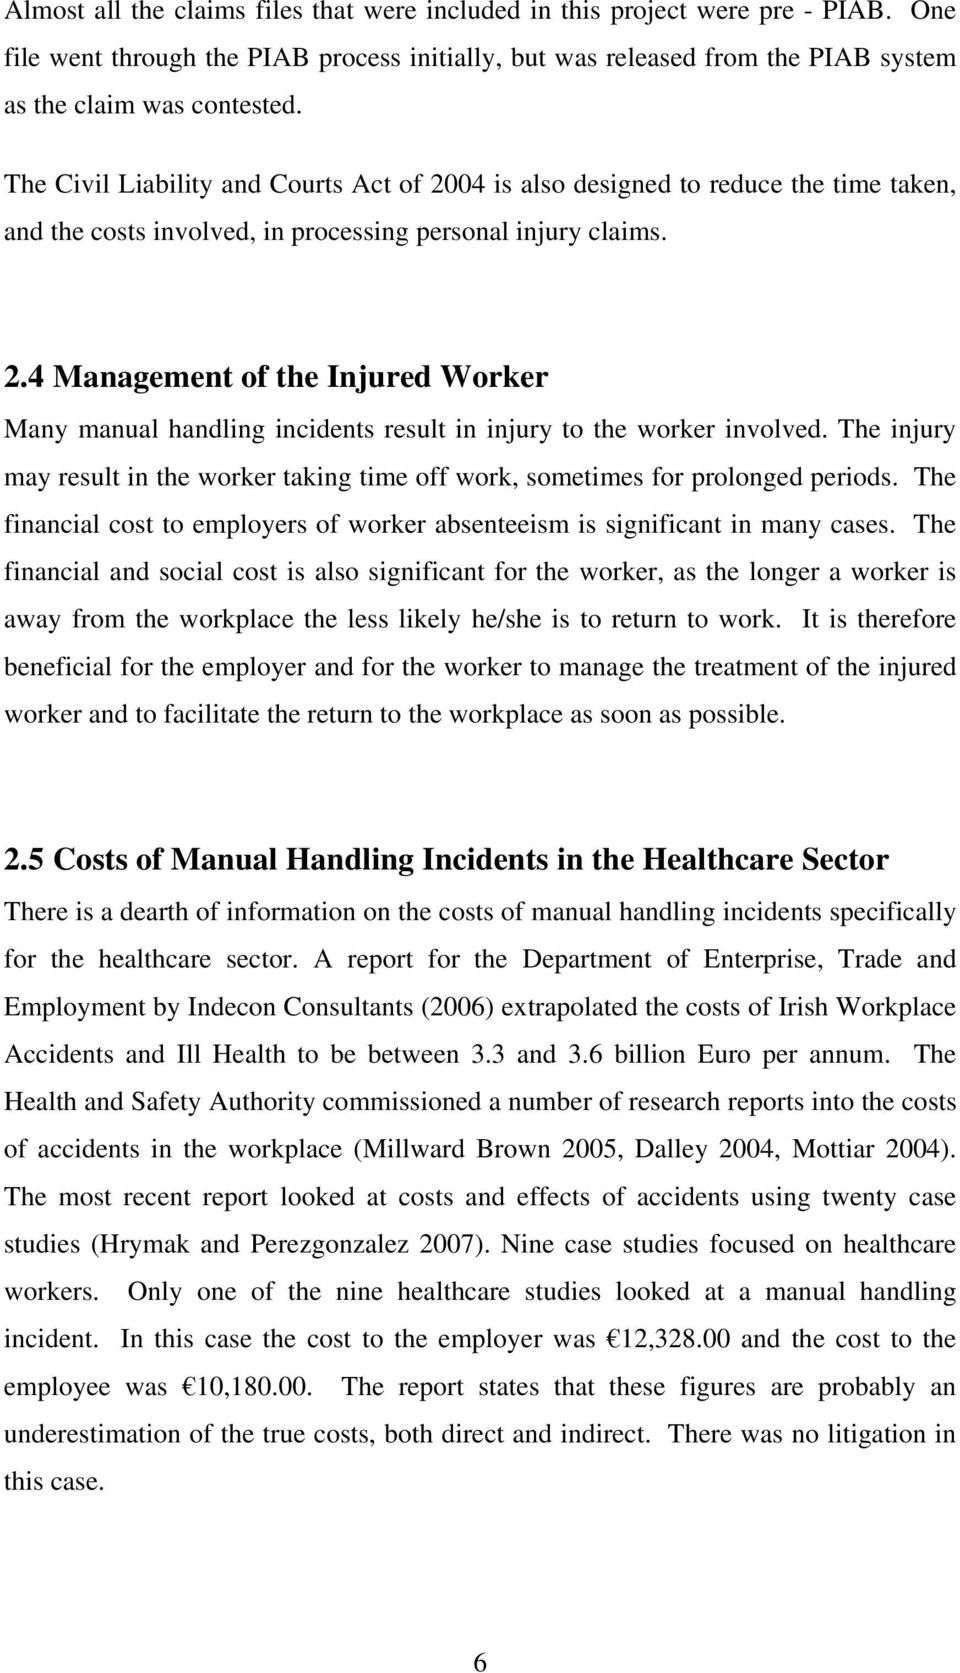 The injury may result in the worker taking time off work, sometimes for prolonged periods. The financial cost to employers of worker absenteeism is significant in many cases.